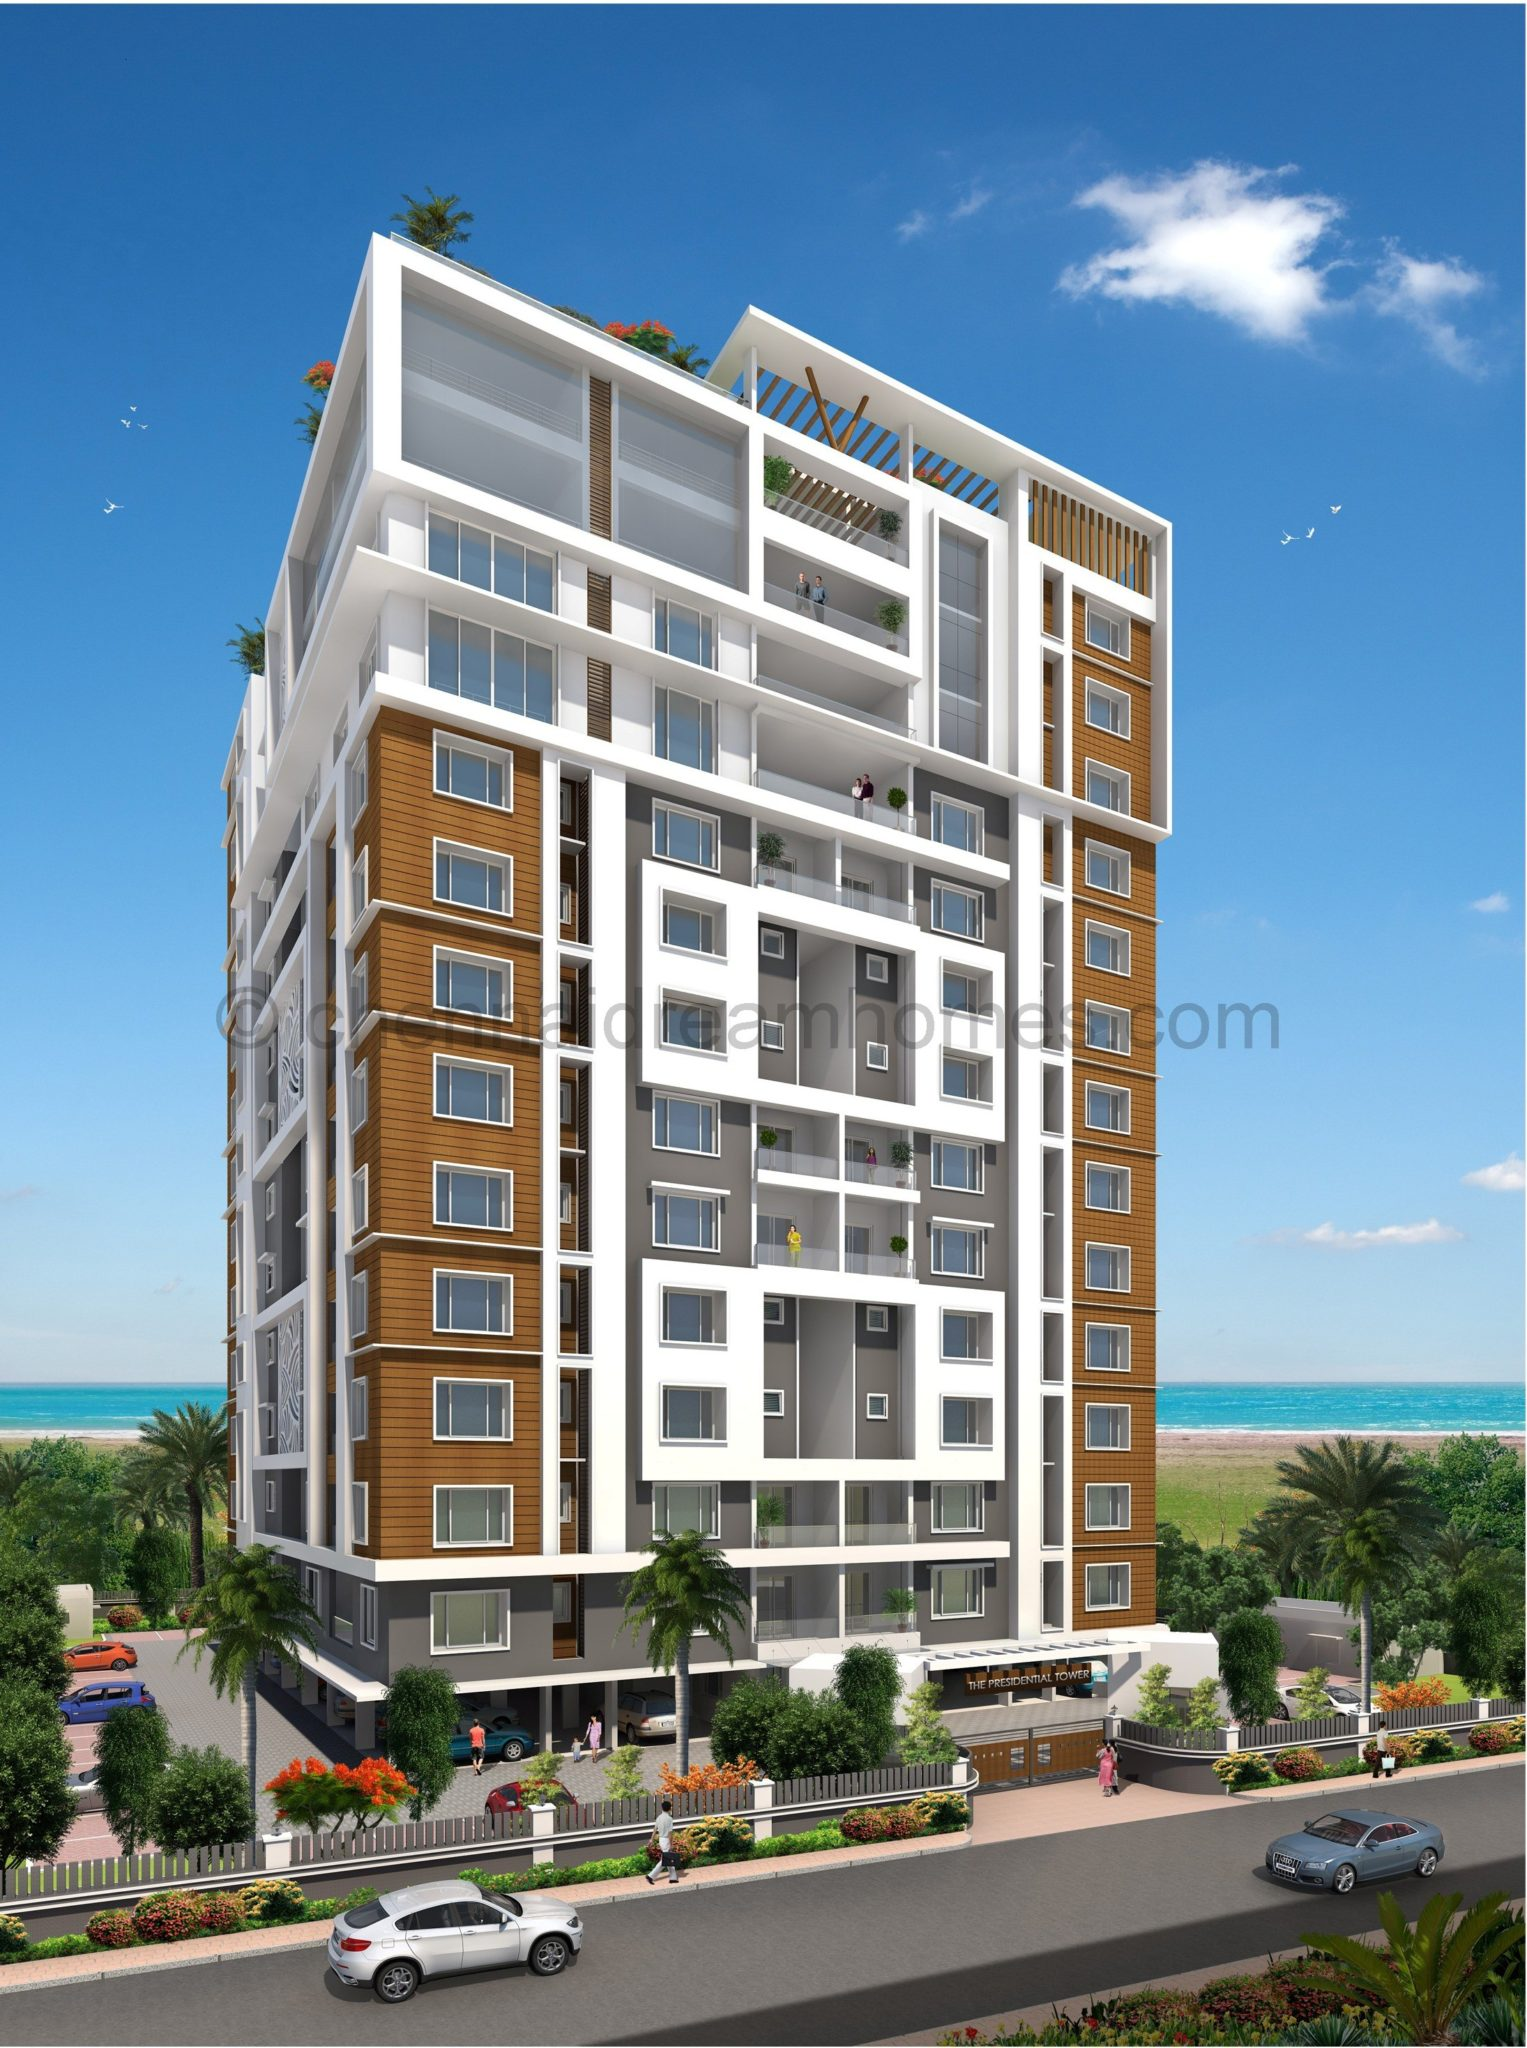 Apartments In Ecr 3 Bhk Multi Storey Homes For Sale With Sea View